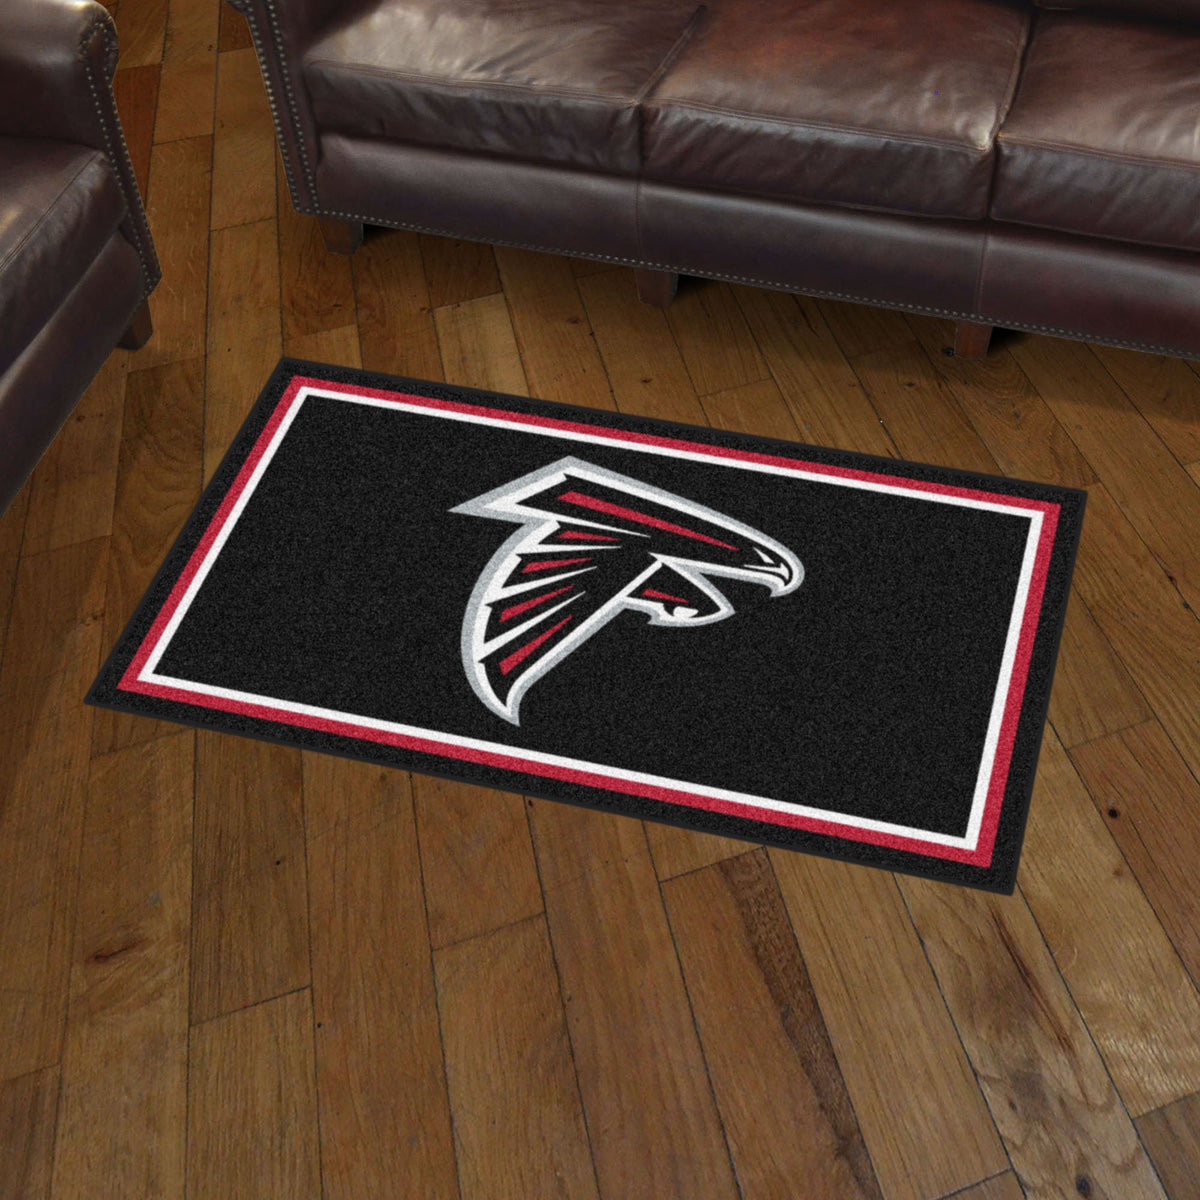 NFL - 3' x 5' Rug NFL Mats, Plush Rugs, 3x5 Rug, NFL, Home Fan Mats Atlanta Falcons